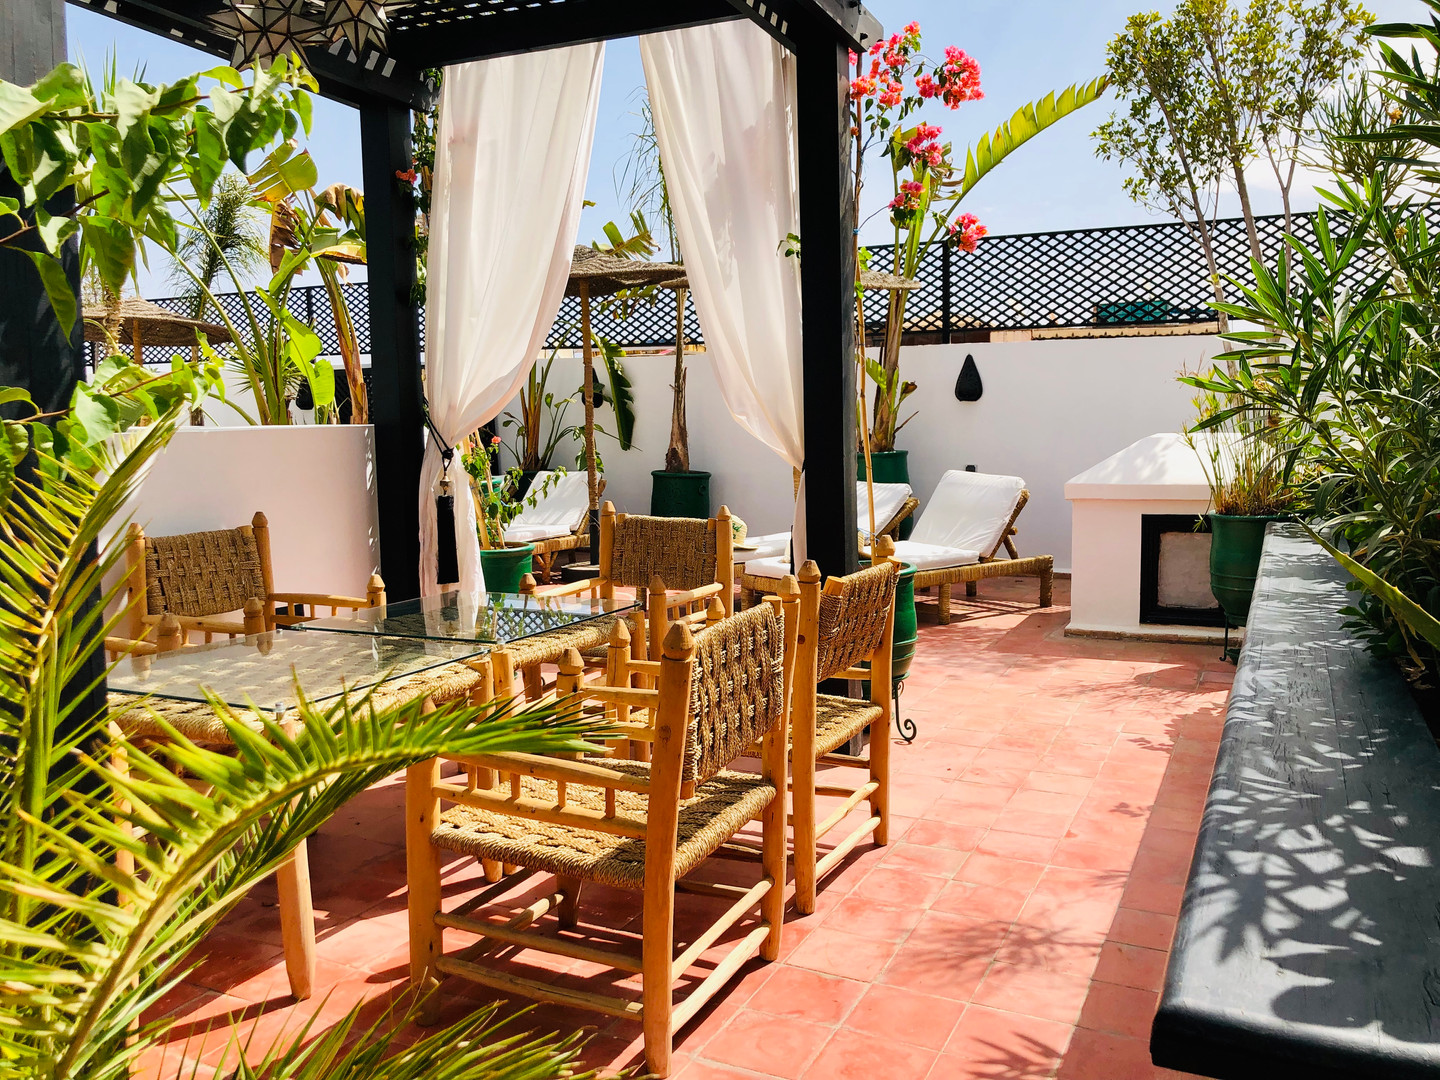 Rooftop Riad Chafia Marrakech boutique hotel riad marrakesh morocco